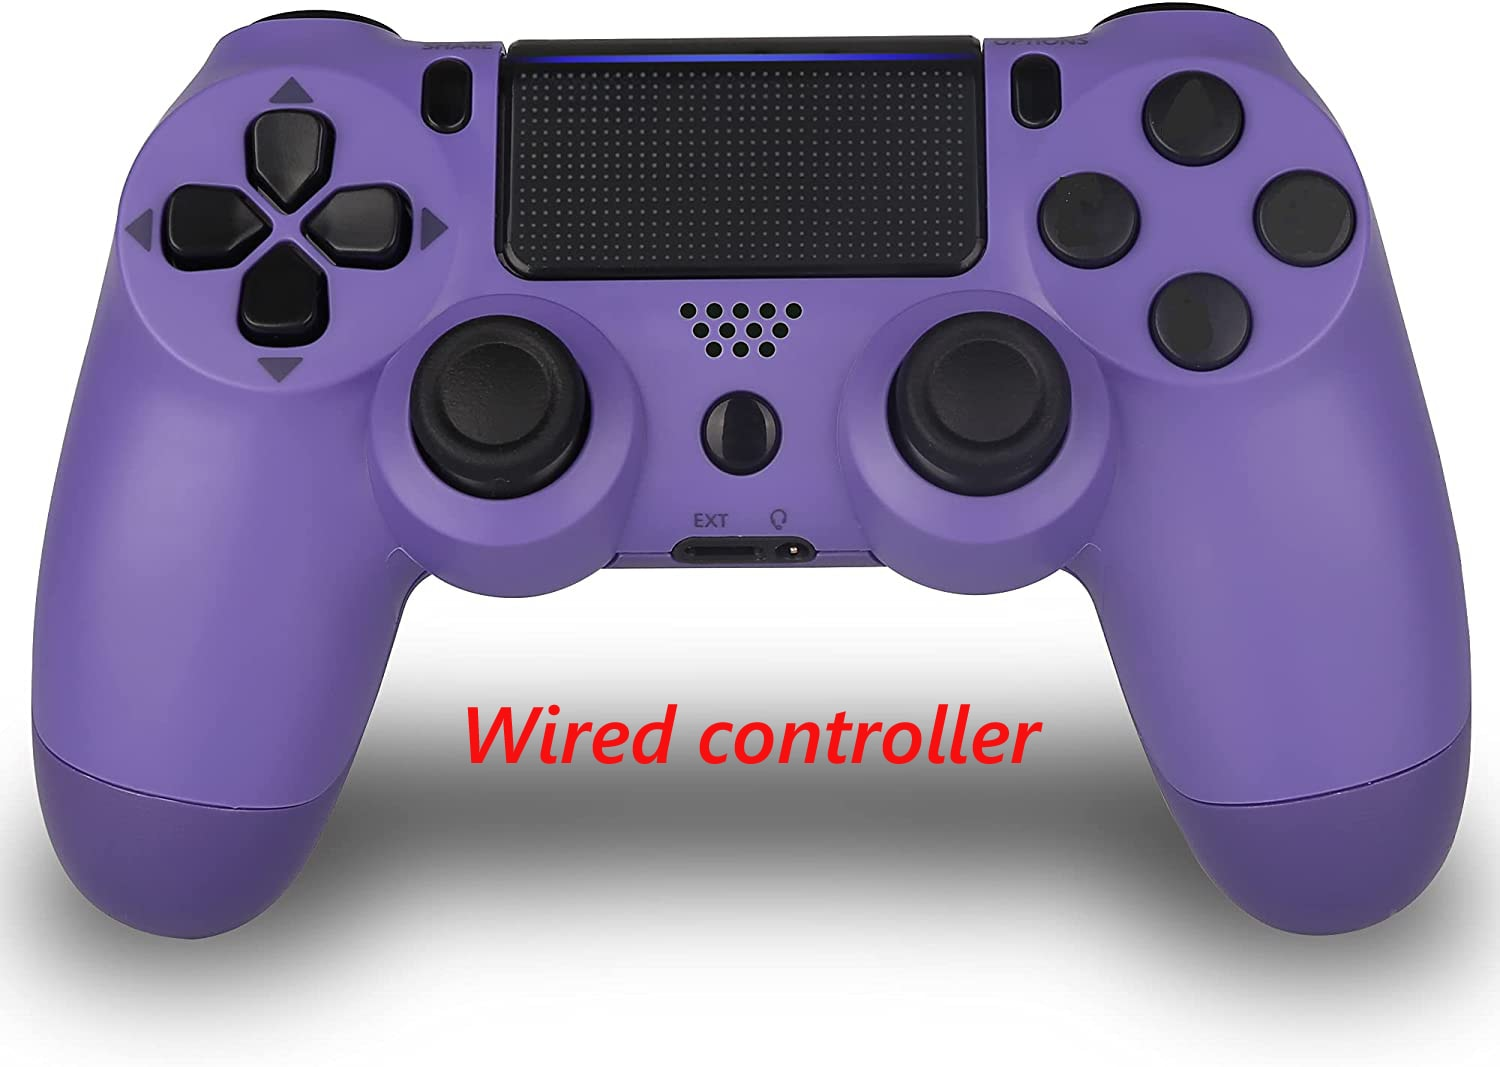 PS4 Wired Controller Dual Shock 4 Gamepad For Sony Playstation 4 Purple - 1